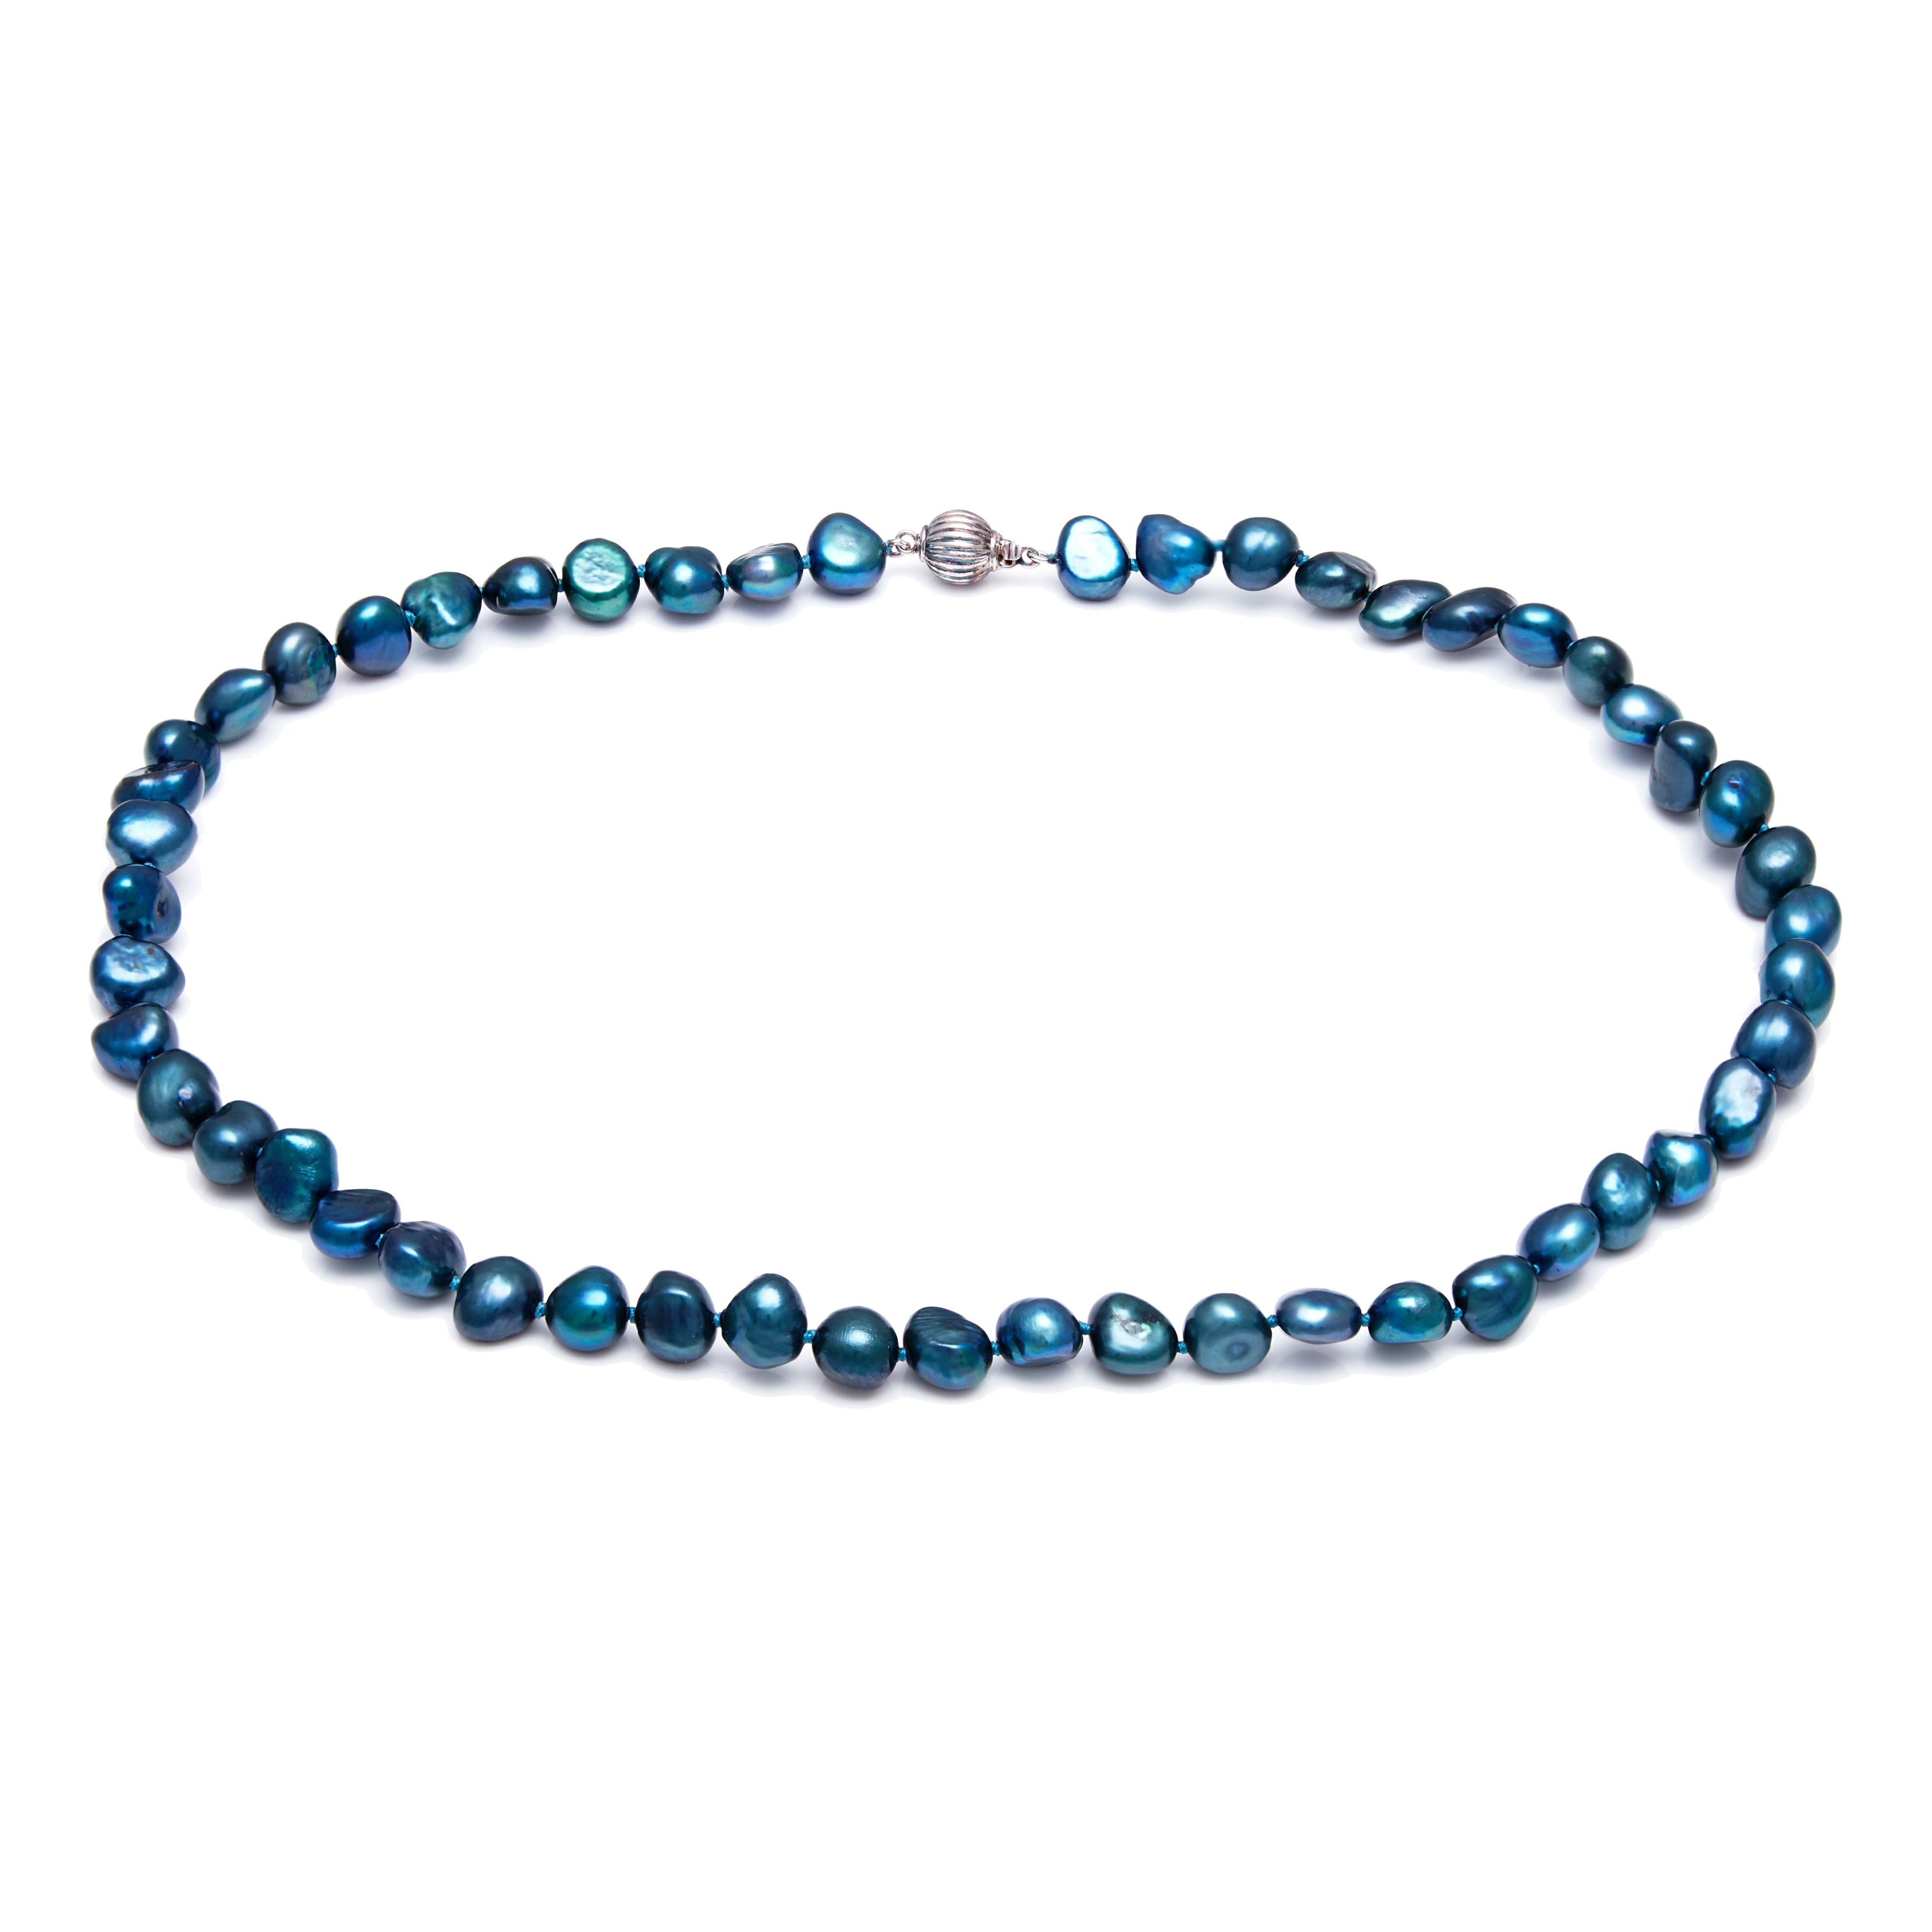 kyoto pearl saphire blue baroque pearl necklace